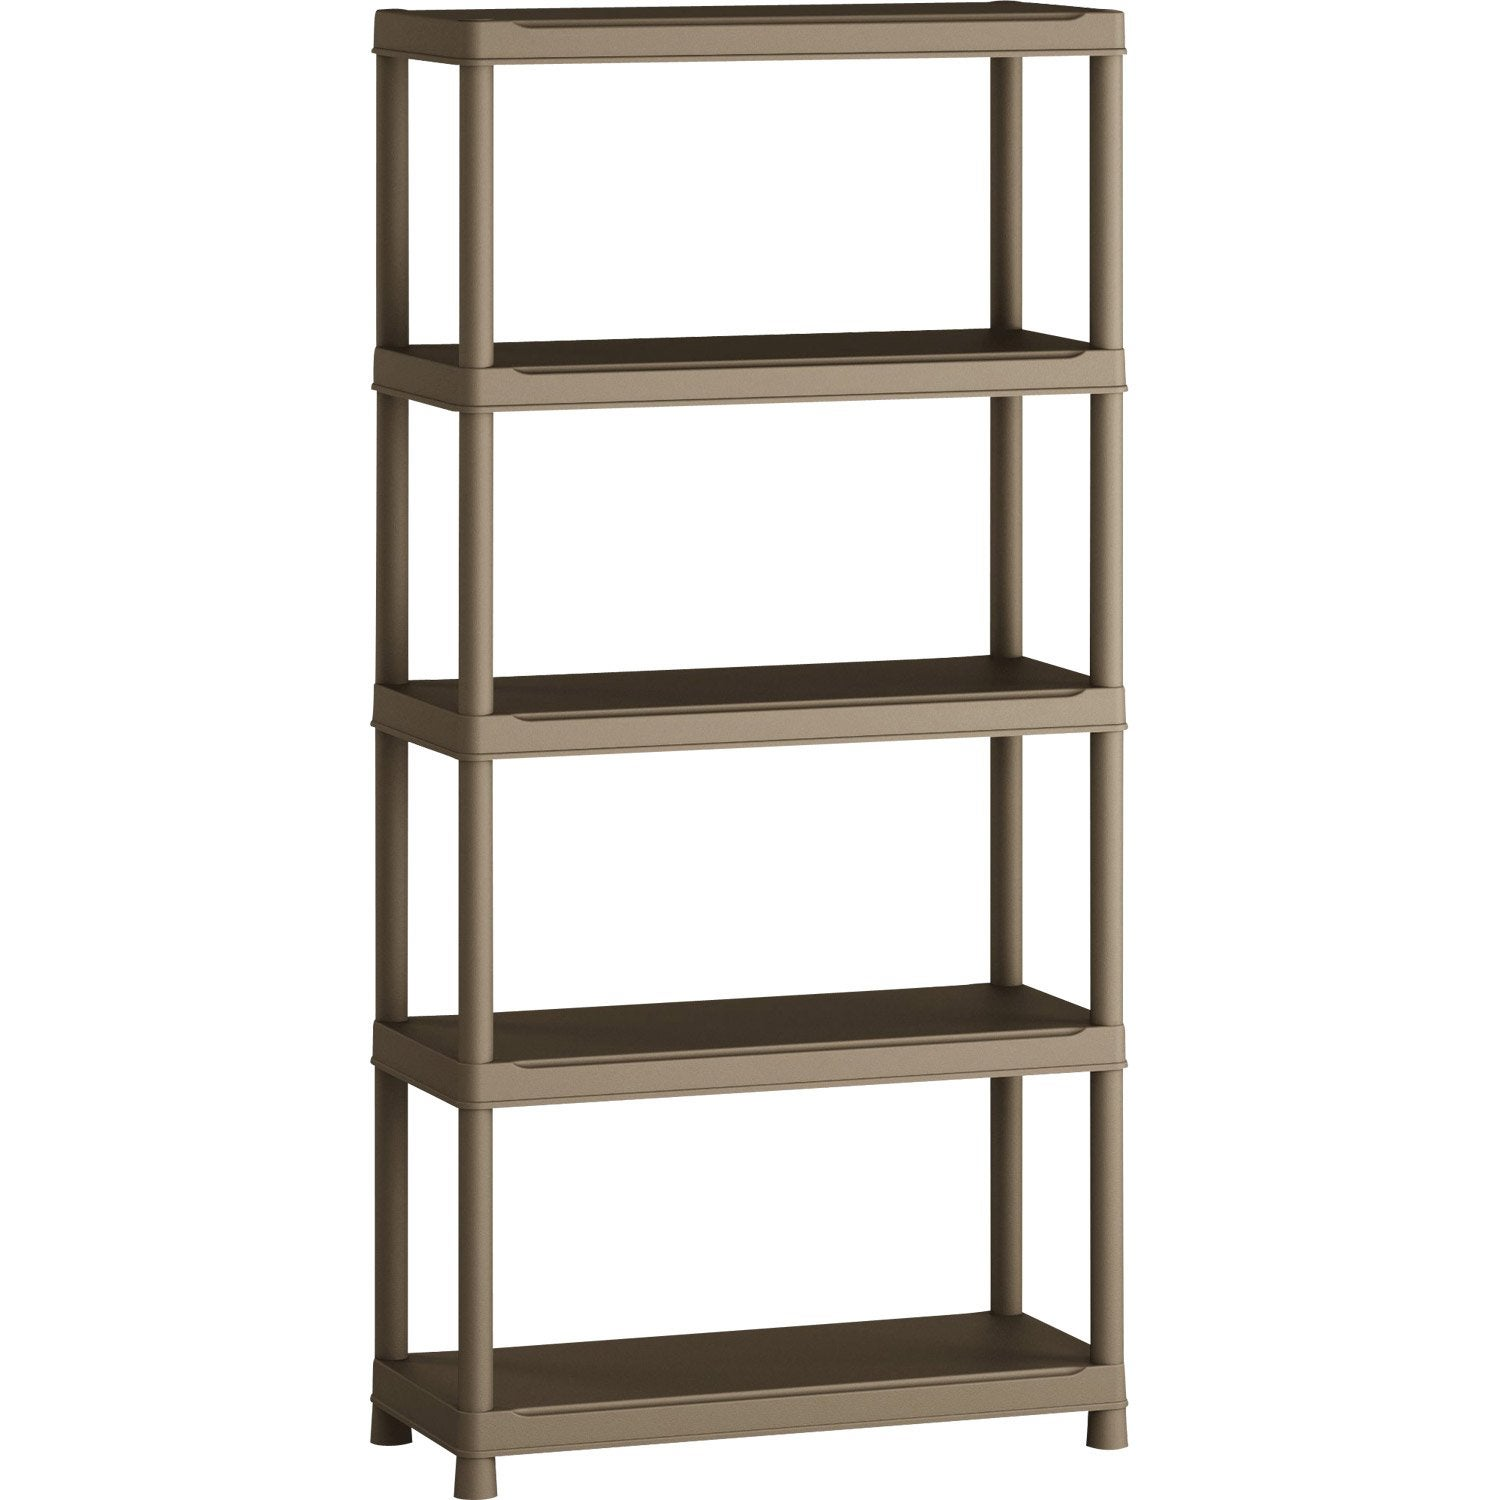 Etag re r sine spaceo 5 tablettes terre l90xh181xp40 cm - Etagere chaussure leroy merlin ...